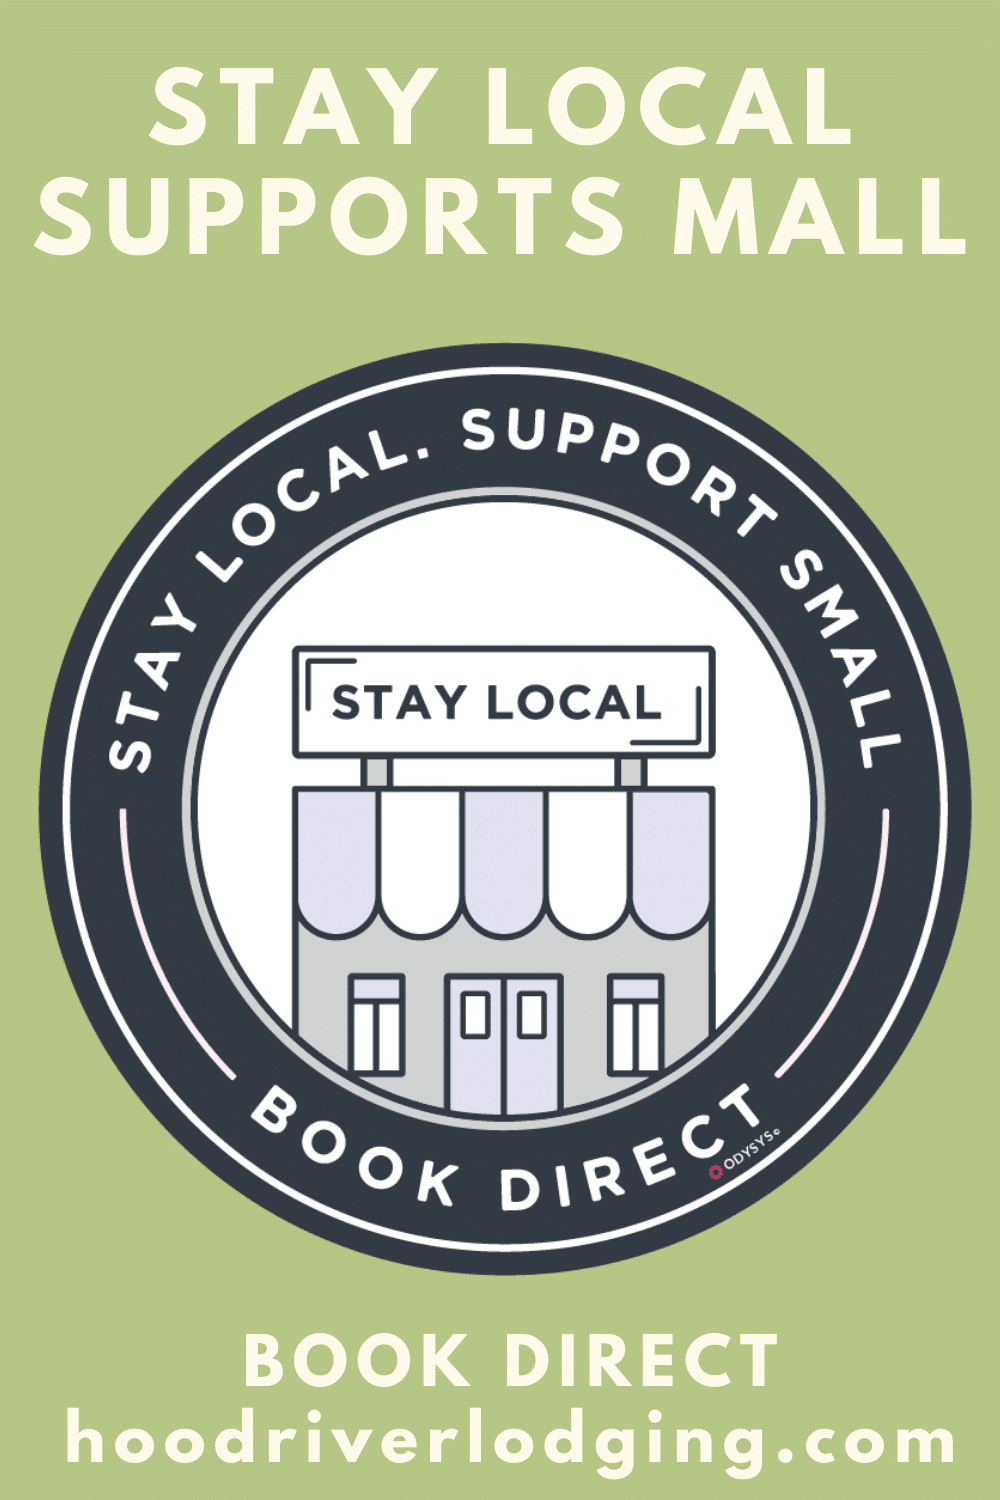 Stay Local. Support Small. Book Direct at the Old Parkdale Inn, Old Parkdale Inn